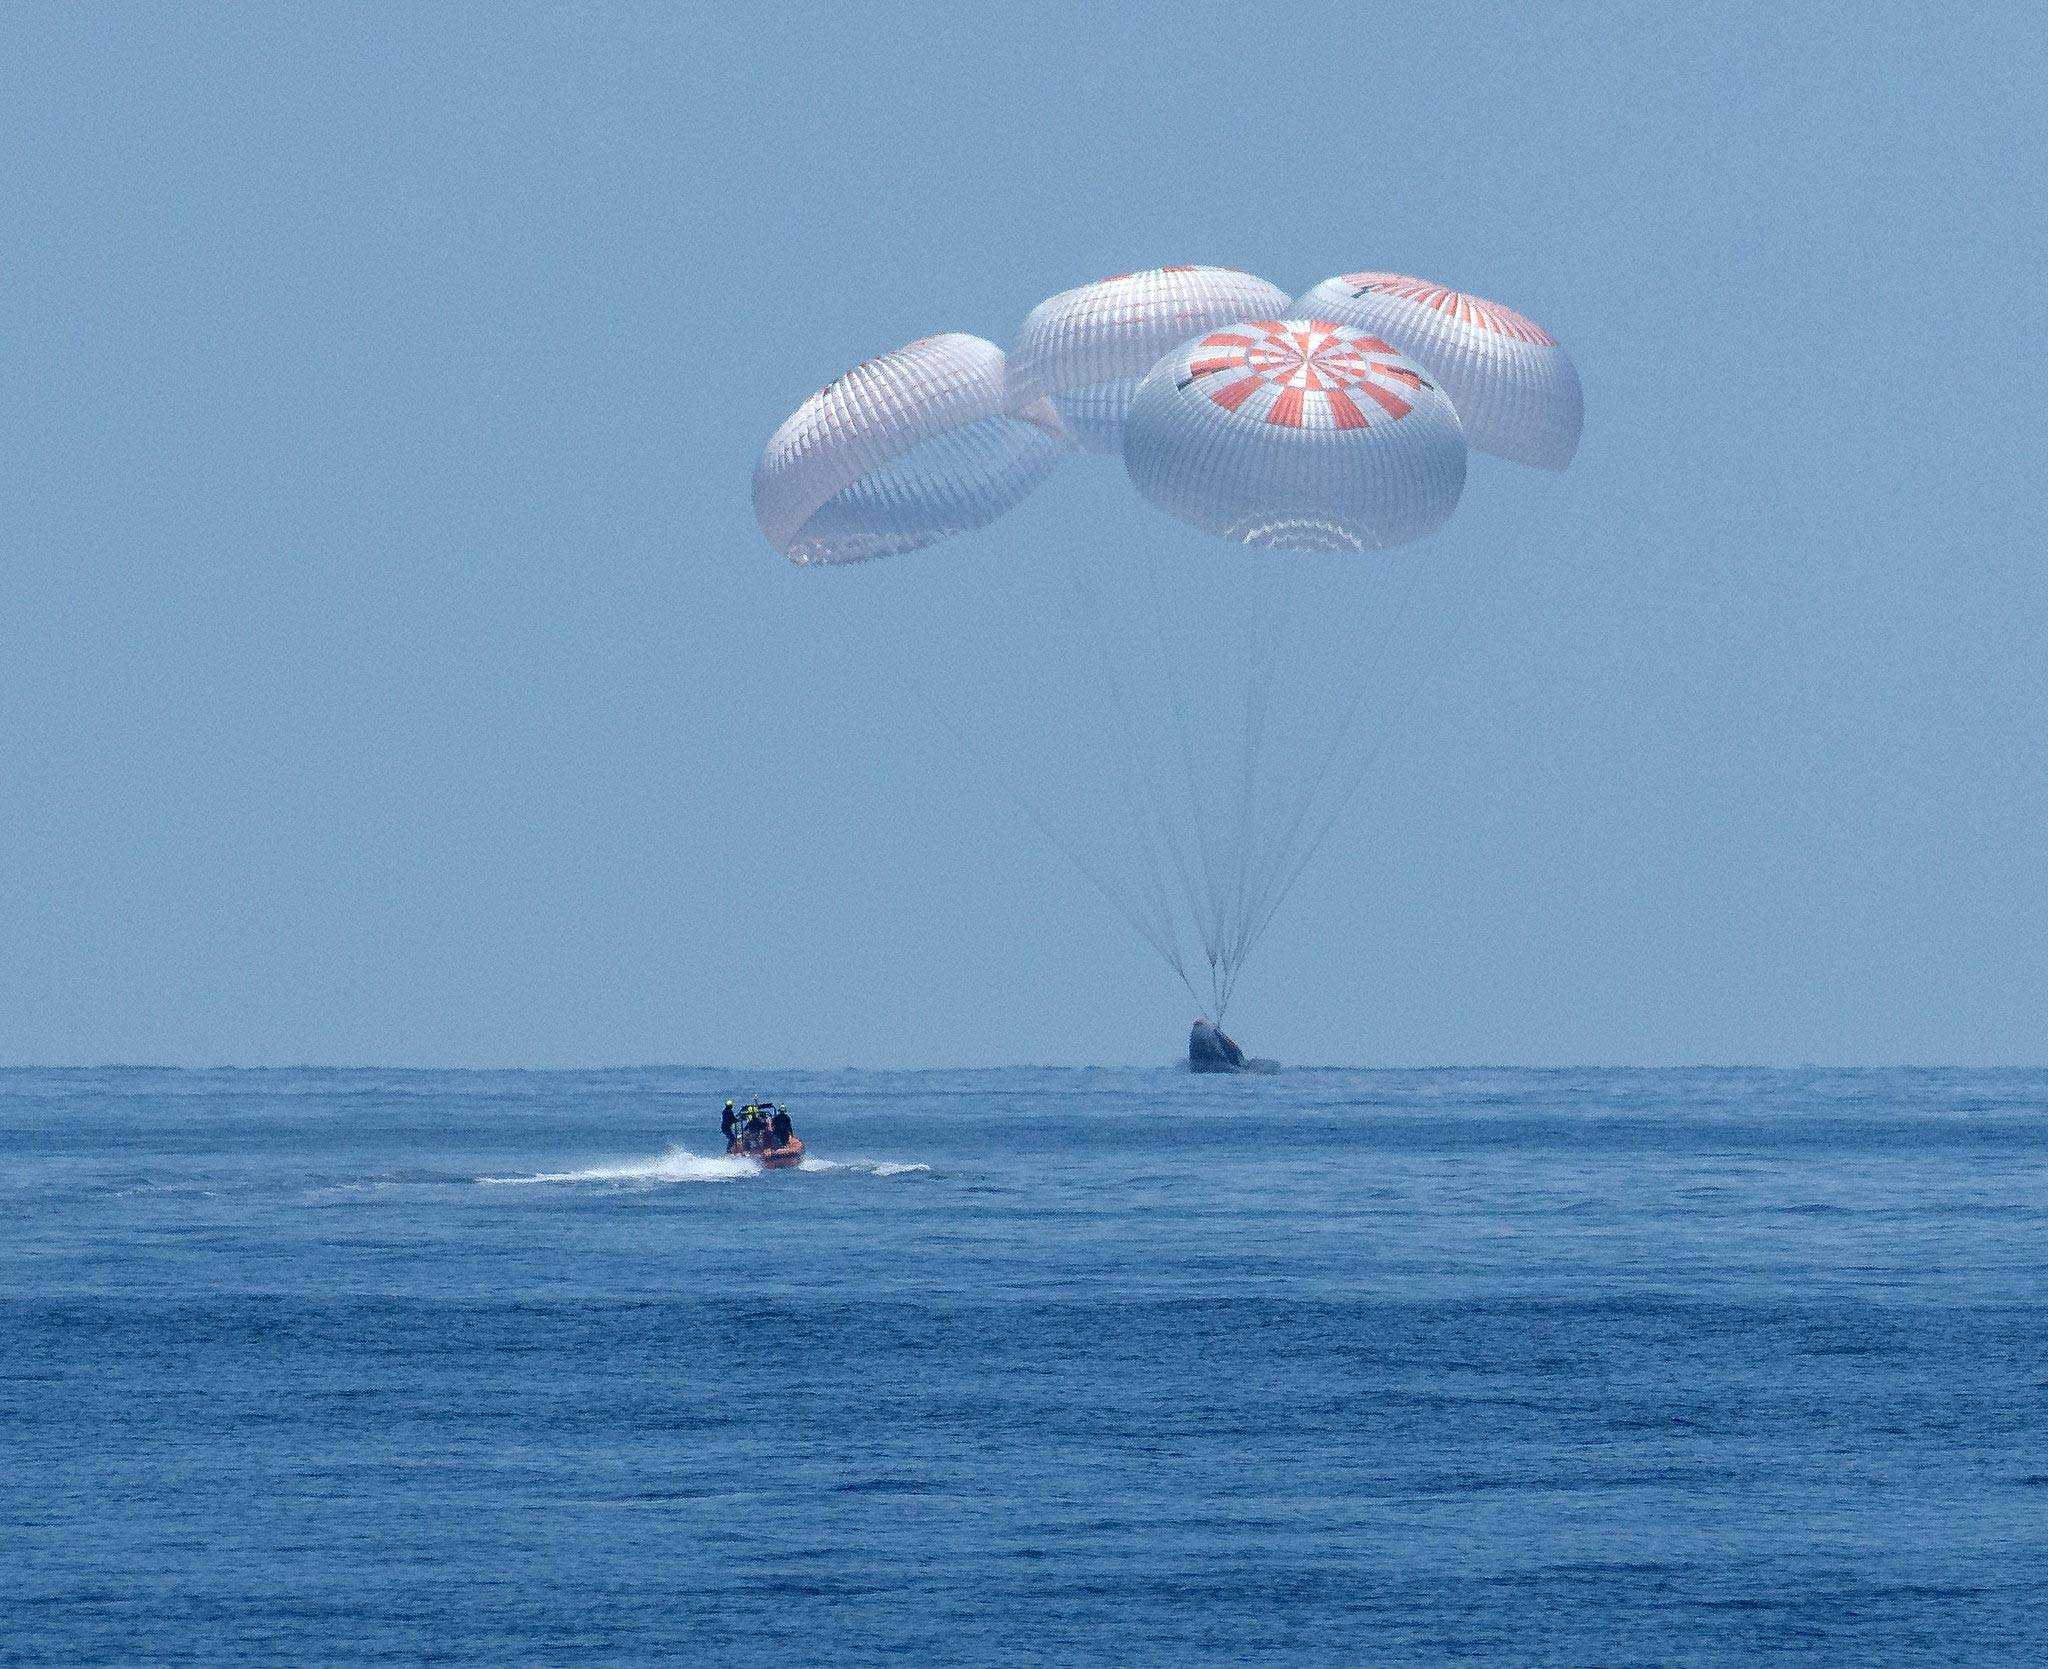 Stunning Image Gallery Documents Thrilling SpaceX Splashdown – First Splashdown of American Astronauts in 45 Years - SciTechDaily